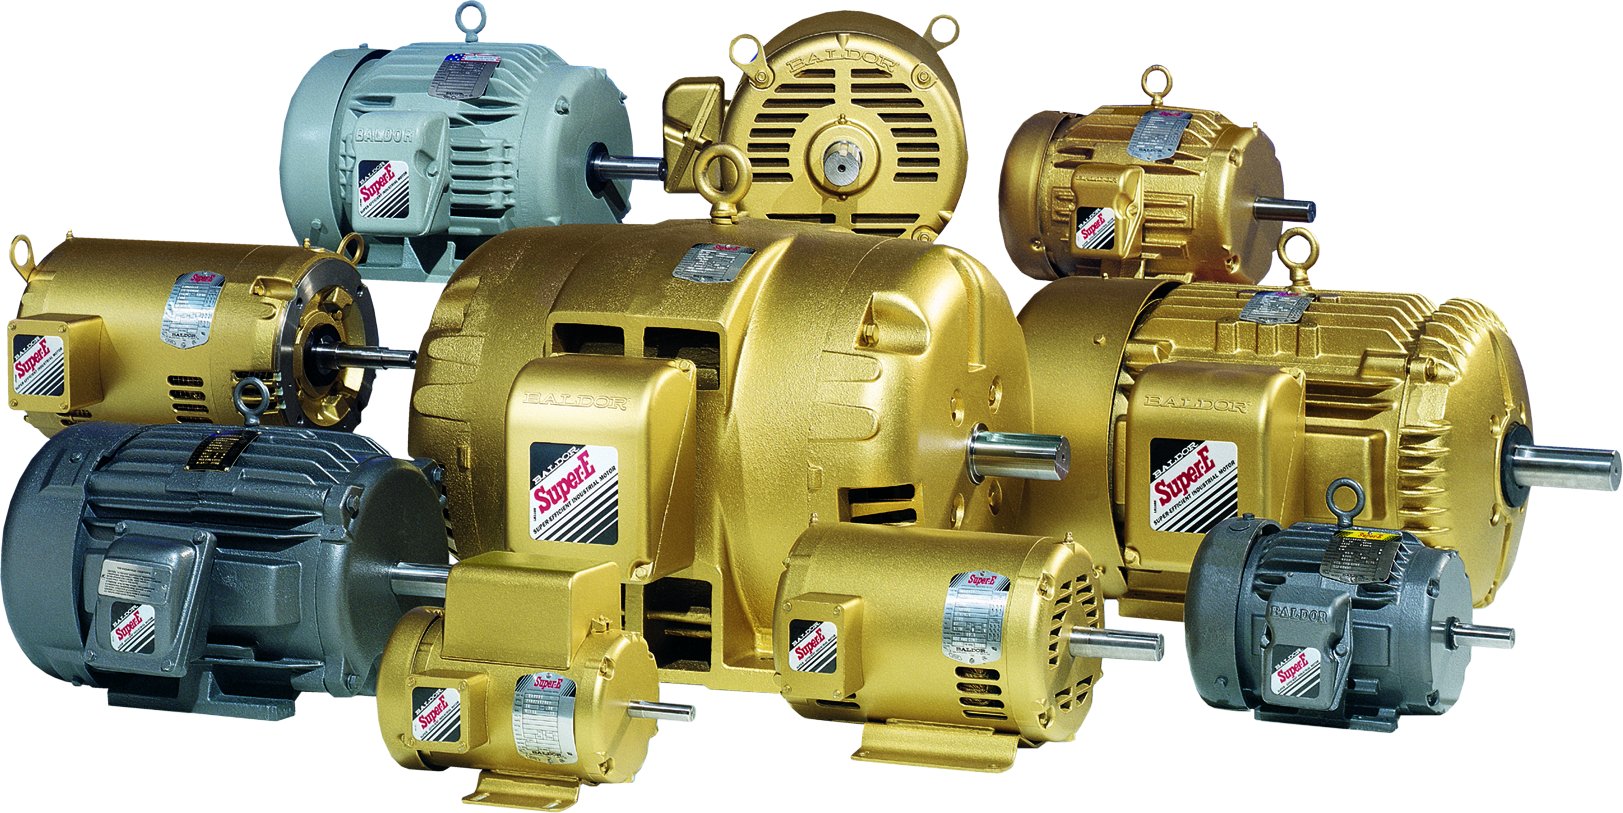 baldor electric motors at el paso phoenix pumps